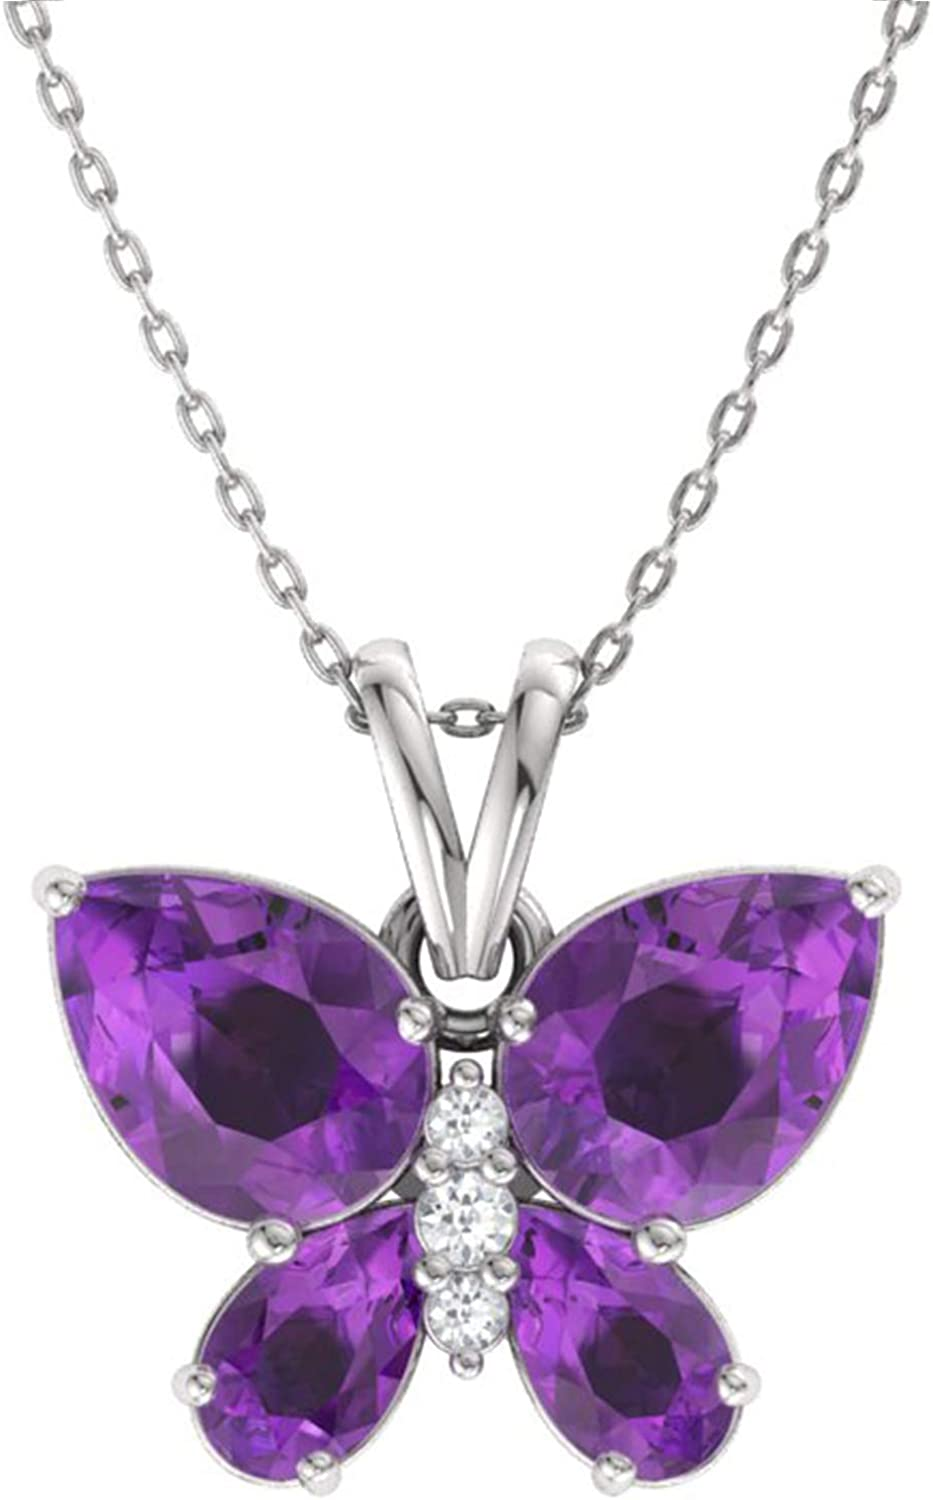 Genuine Pink Topaz Gemstone Rhodium Plated Sterling Silver Butterfly Pendant Necklace